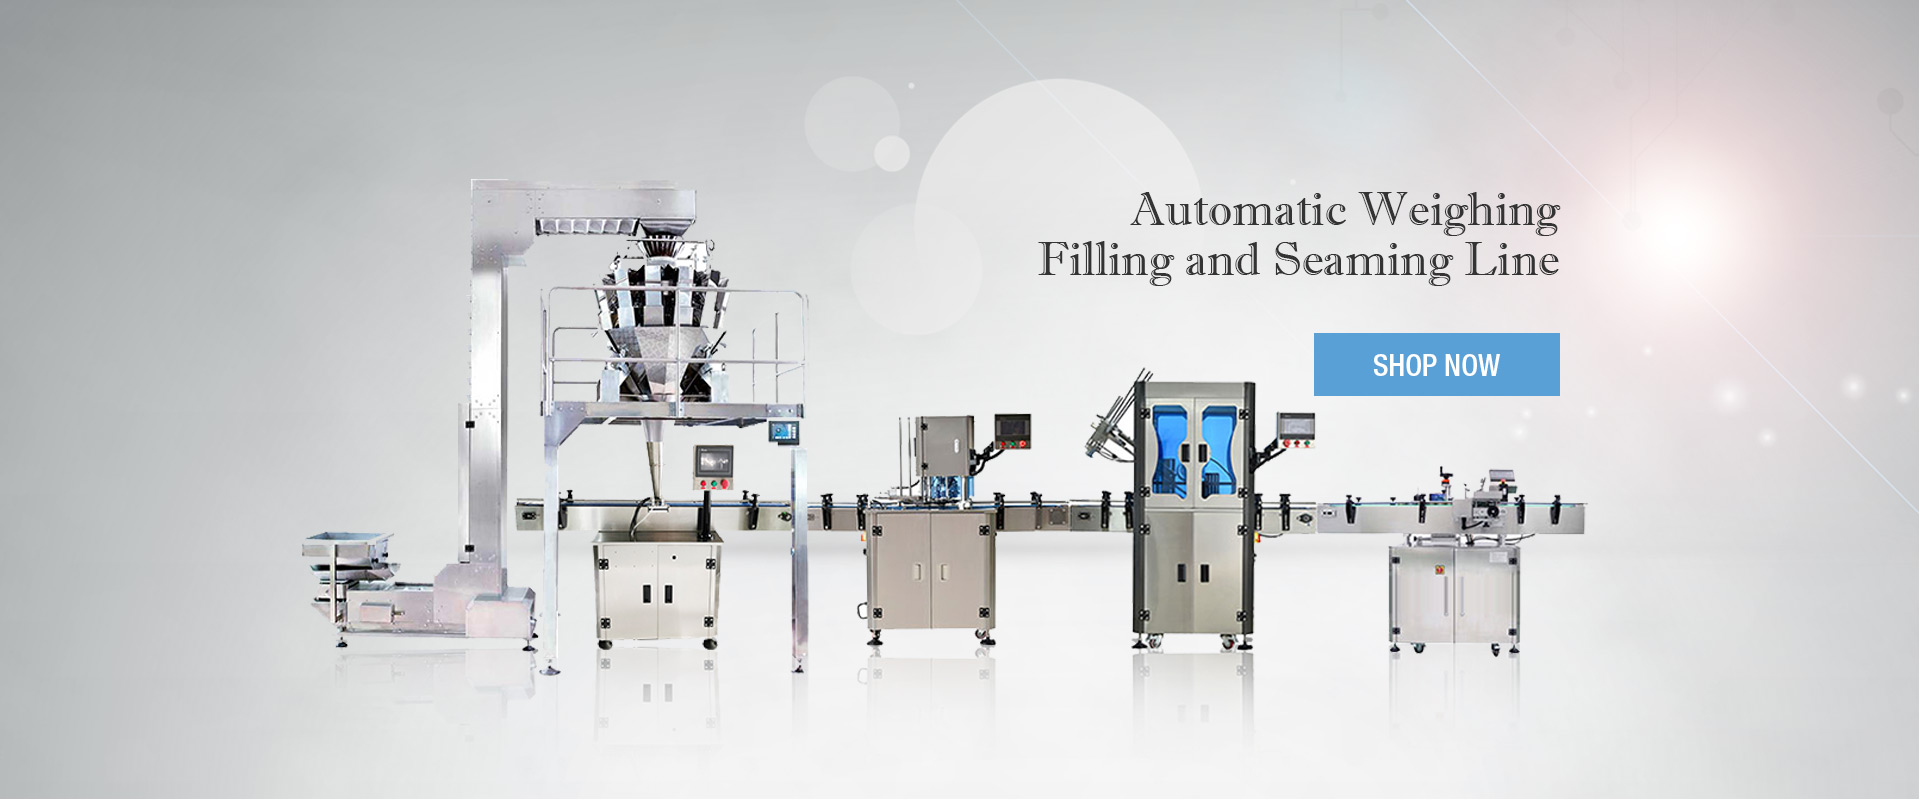 Automatic Weighing Filling and Seaming Line